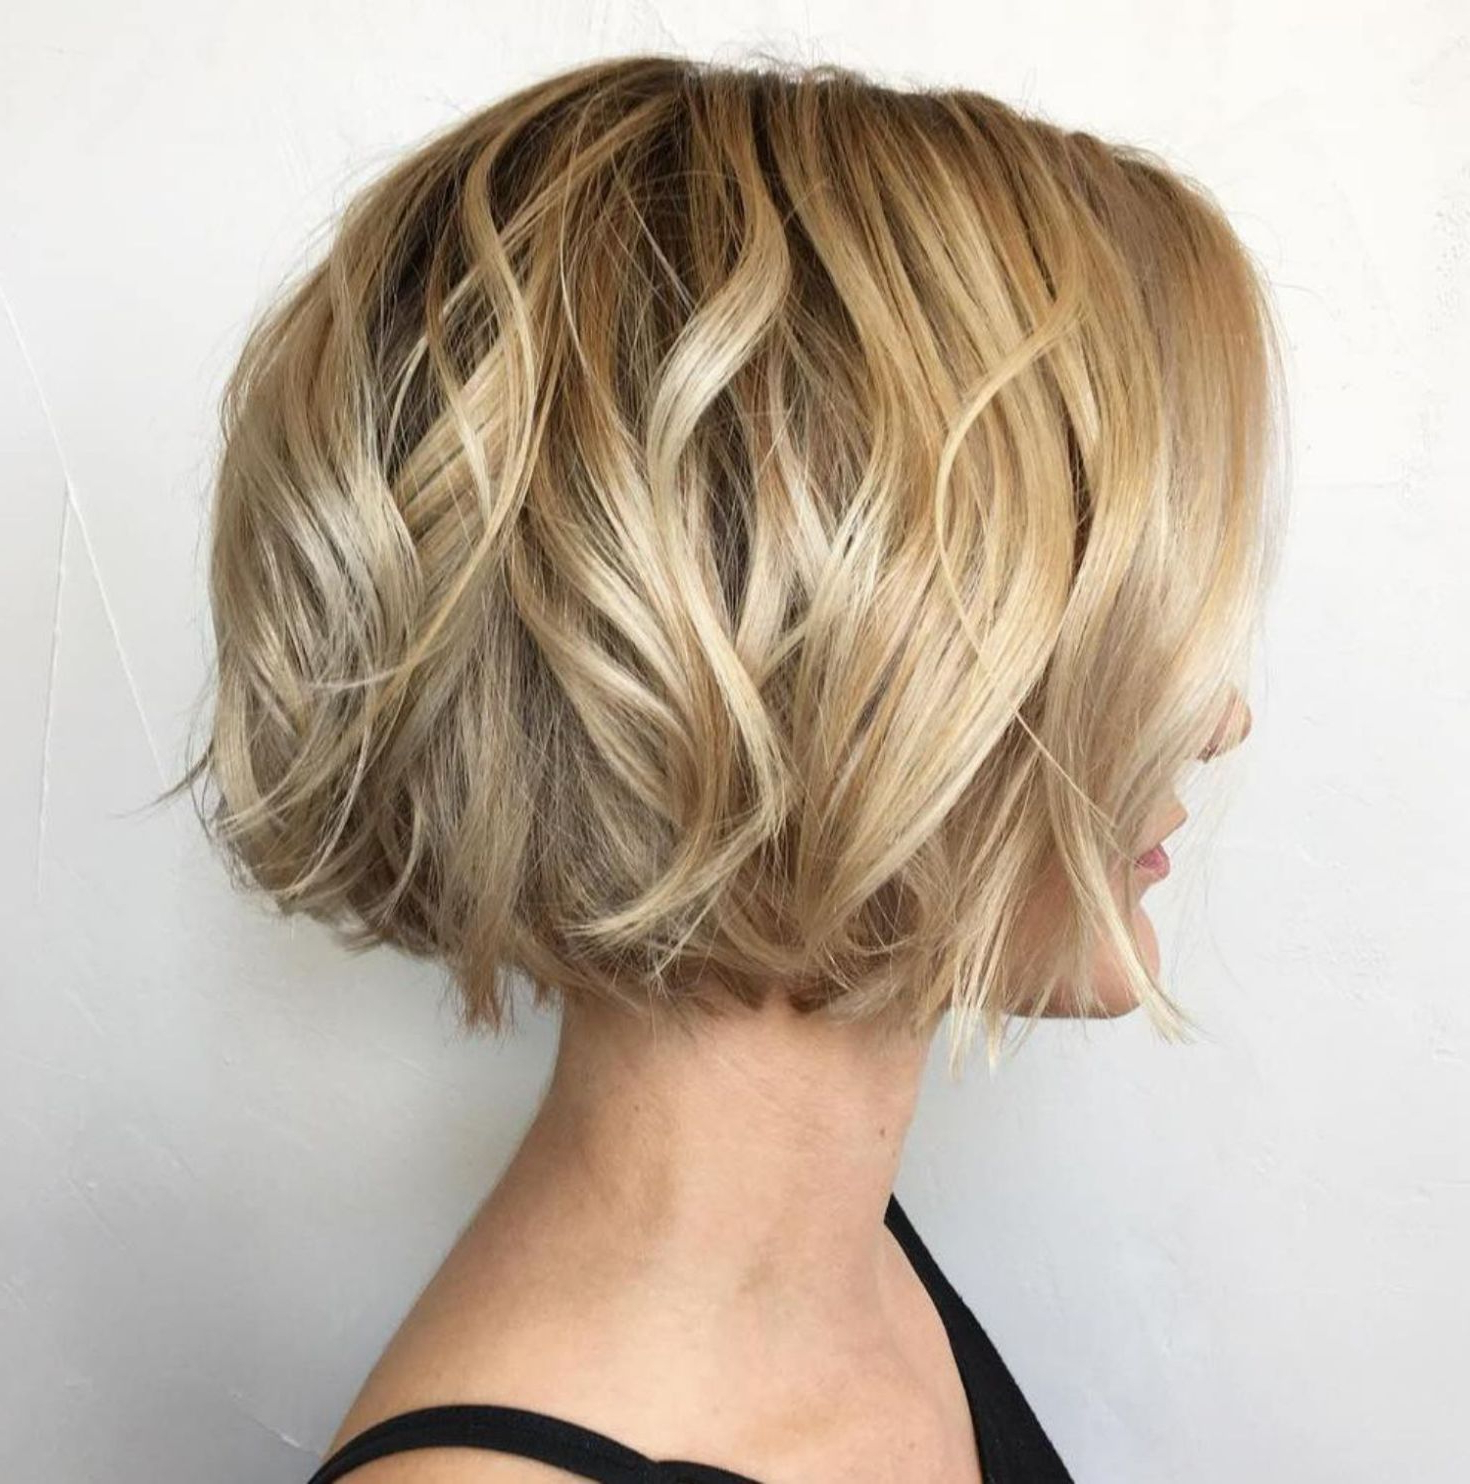 100 Mind Blowing Short Hairstyles For Fine Hair In 2018 | Beauty In Loosely Waved Messy Brunette Bob Hairstyles (View 6 of 25)